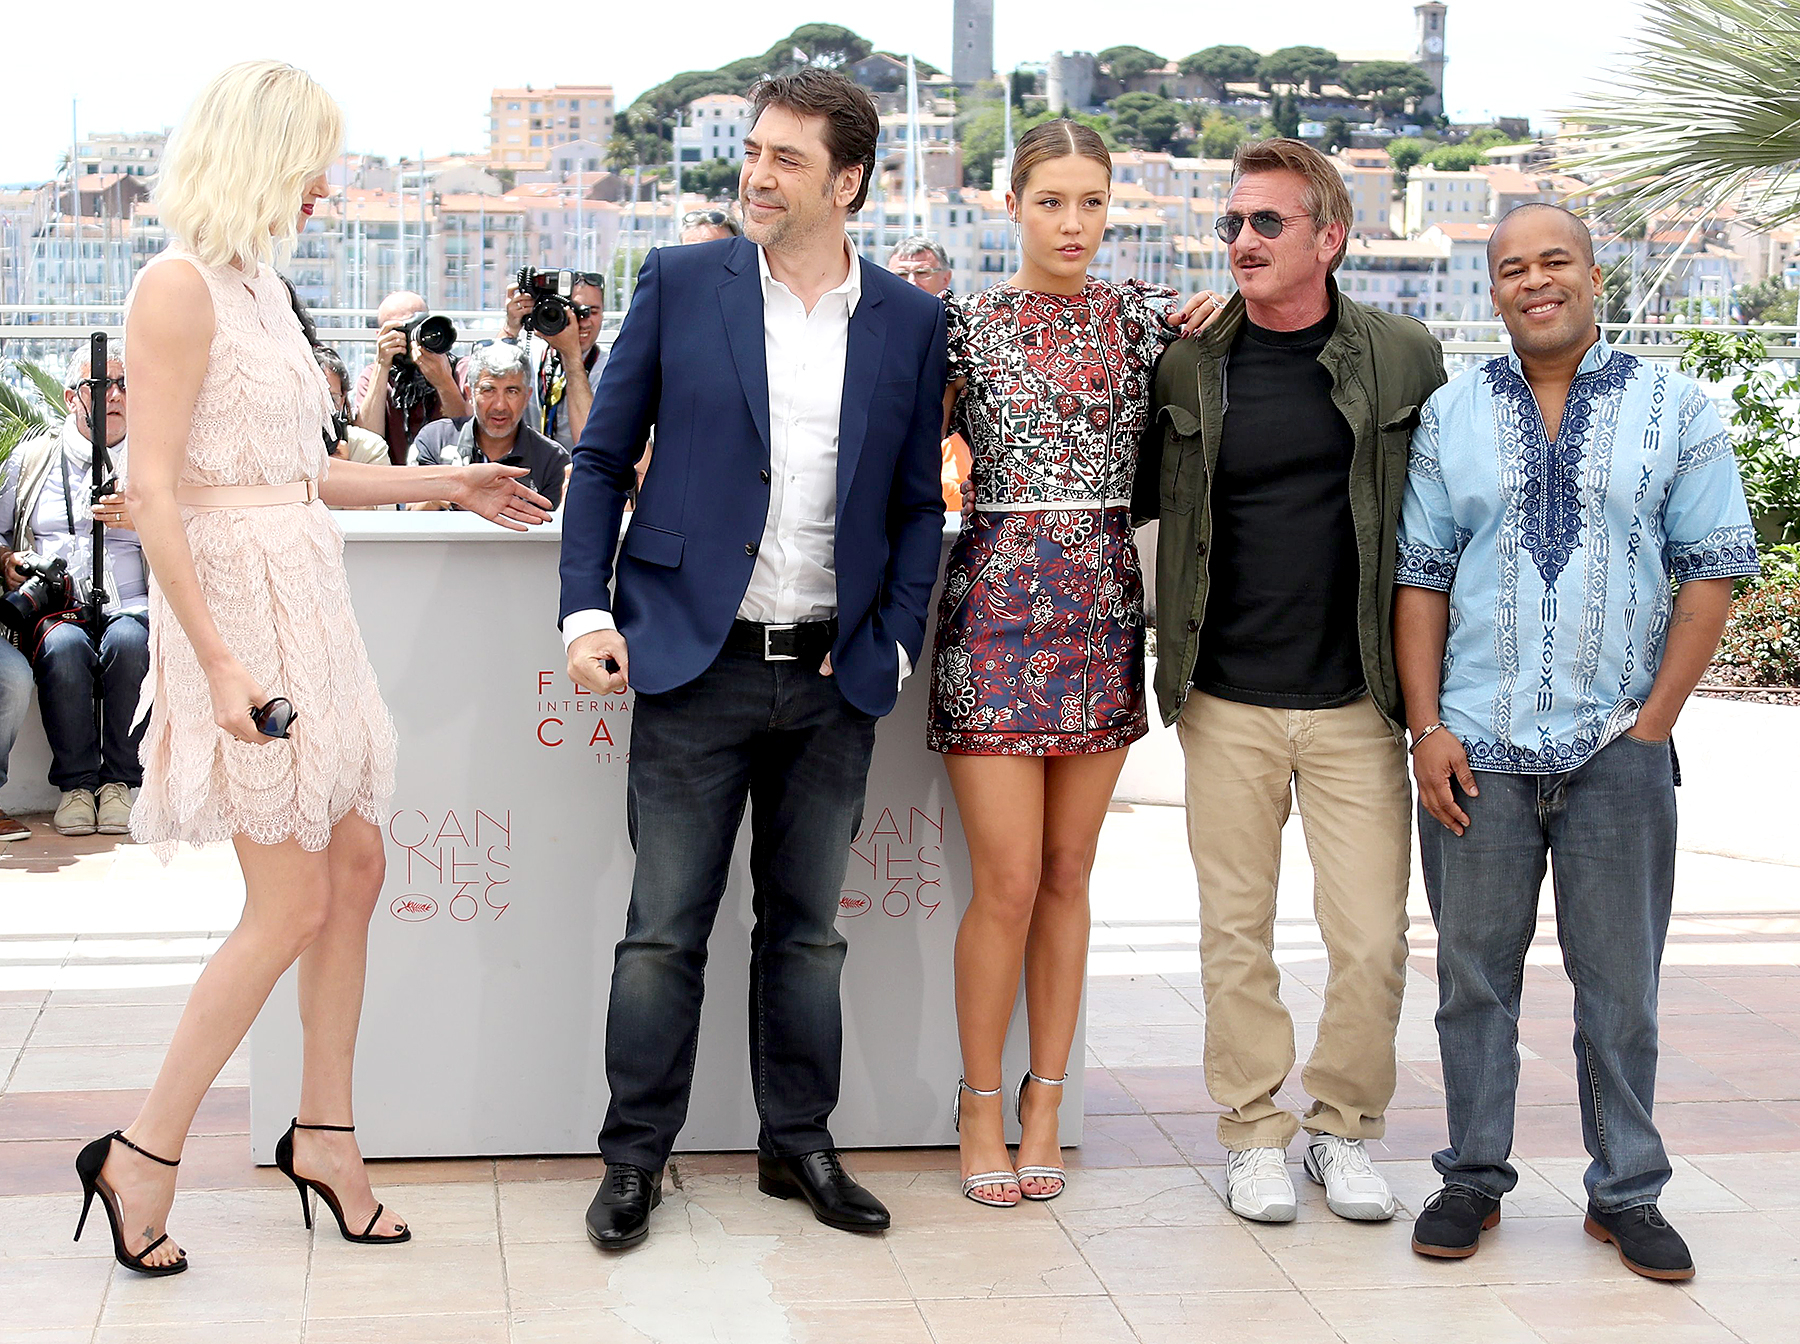 Charlize Theron, Javier Bardem, Adele Exarchopoulos, Sean Penn and Zubin Cooper (from left) pose on May 20, 2016 during a photocall for the film.